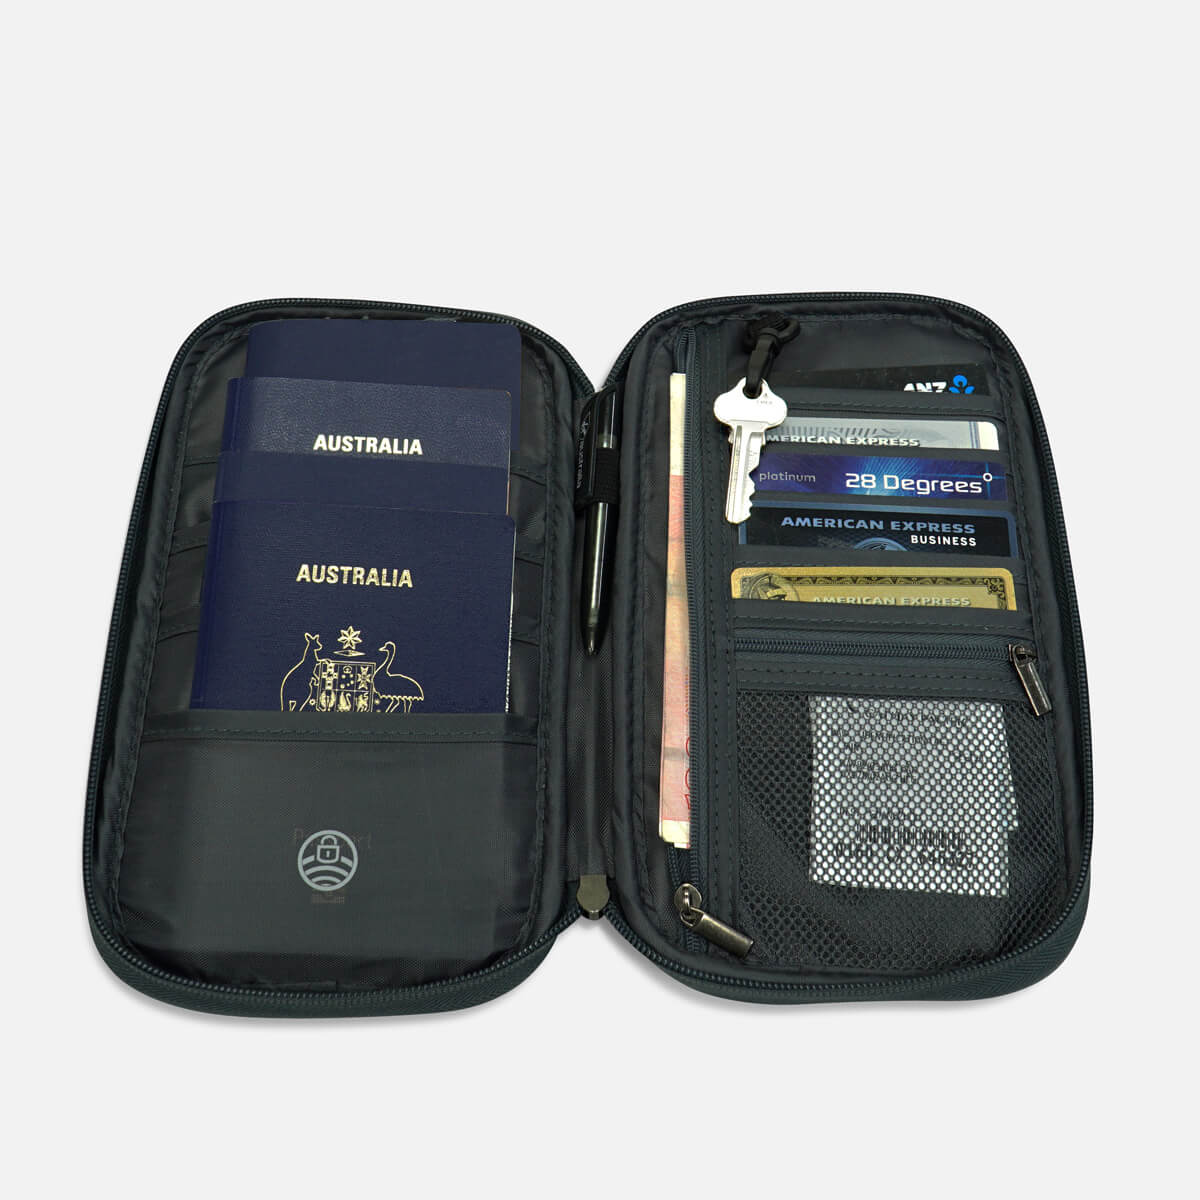 RFID protected Family Travel Wallet